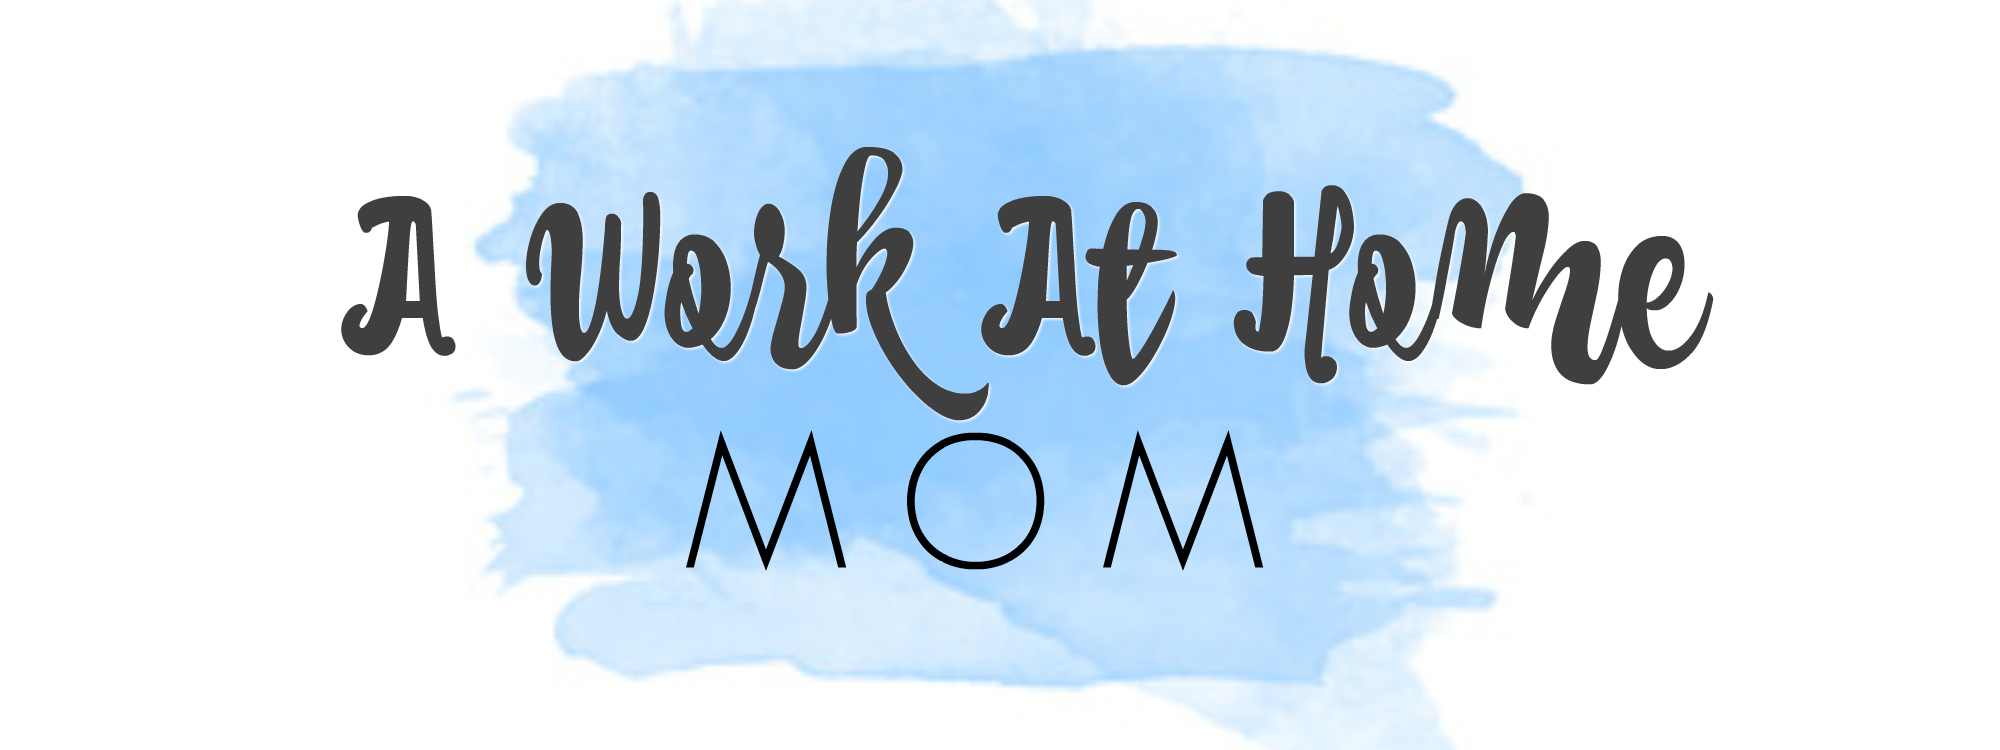 A Work At Home Mom - We Can Show You How To Make Money Online Working From Home